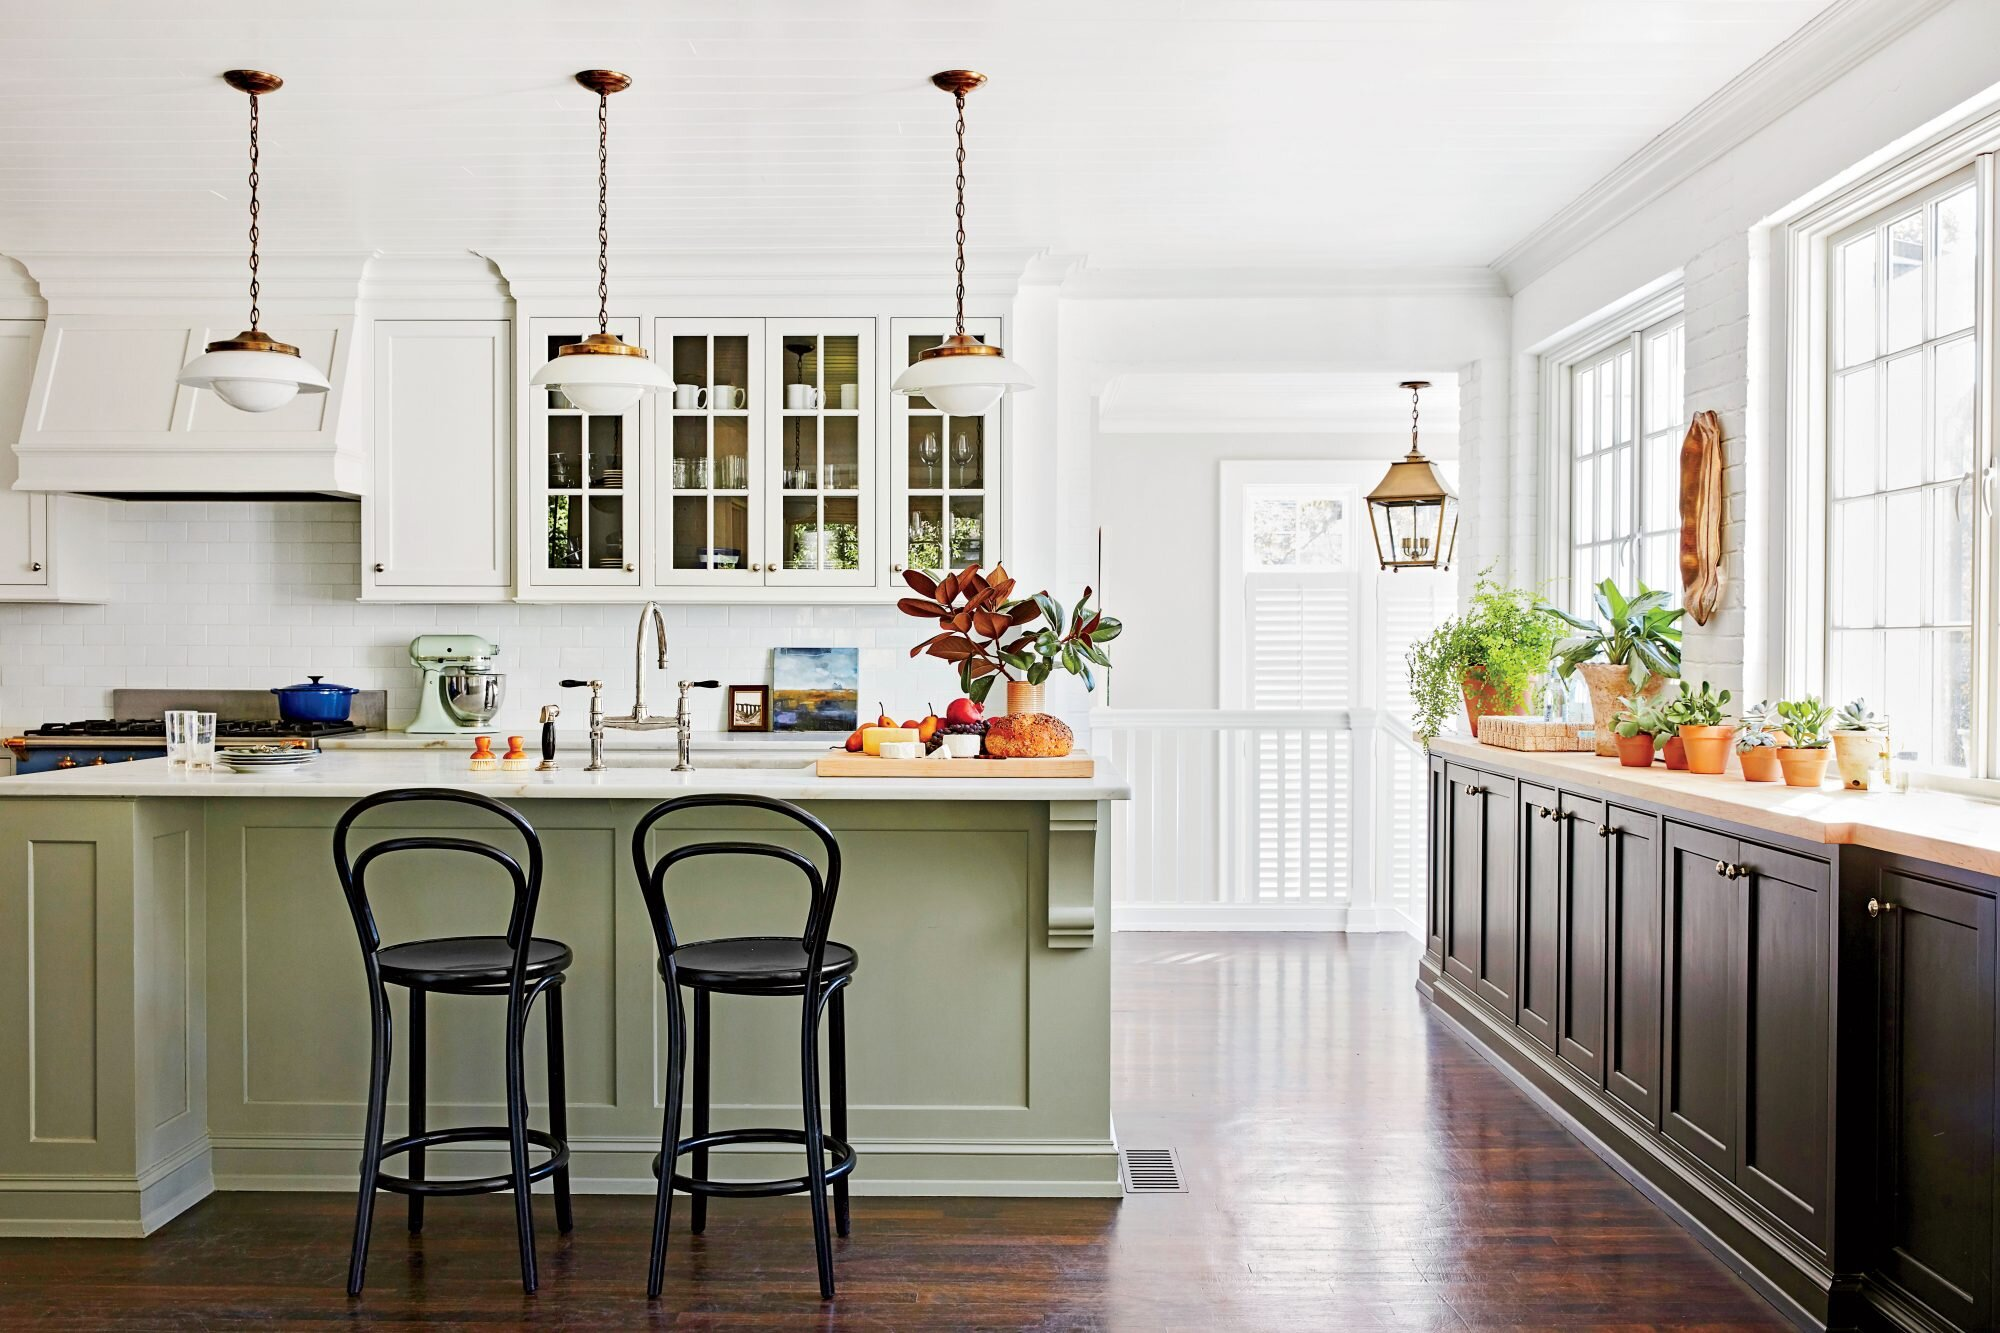 12 Kitchen Design Trends We Predict Will Be Everywhere in 12 ...